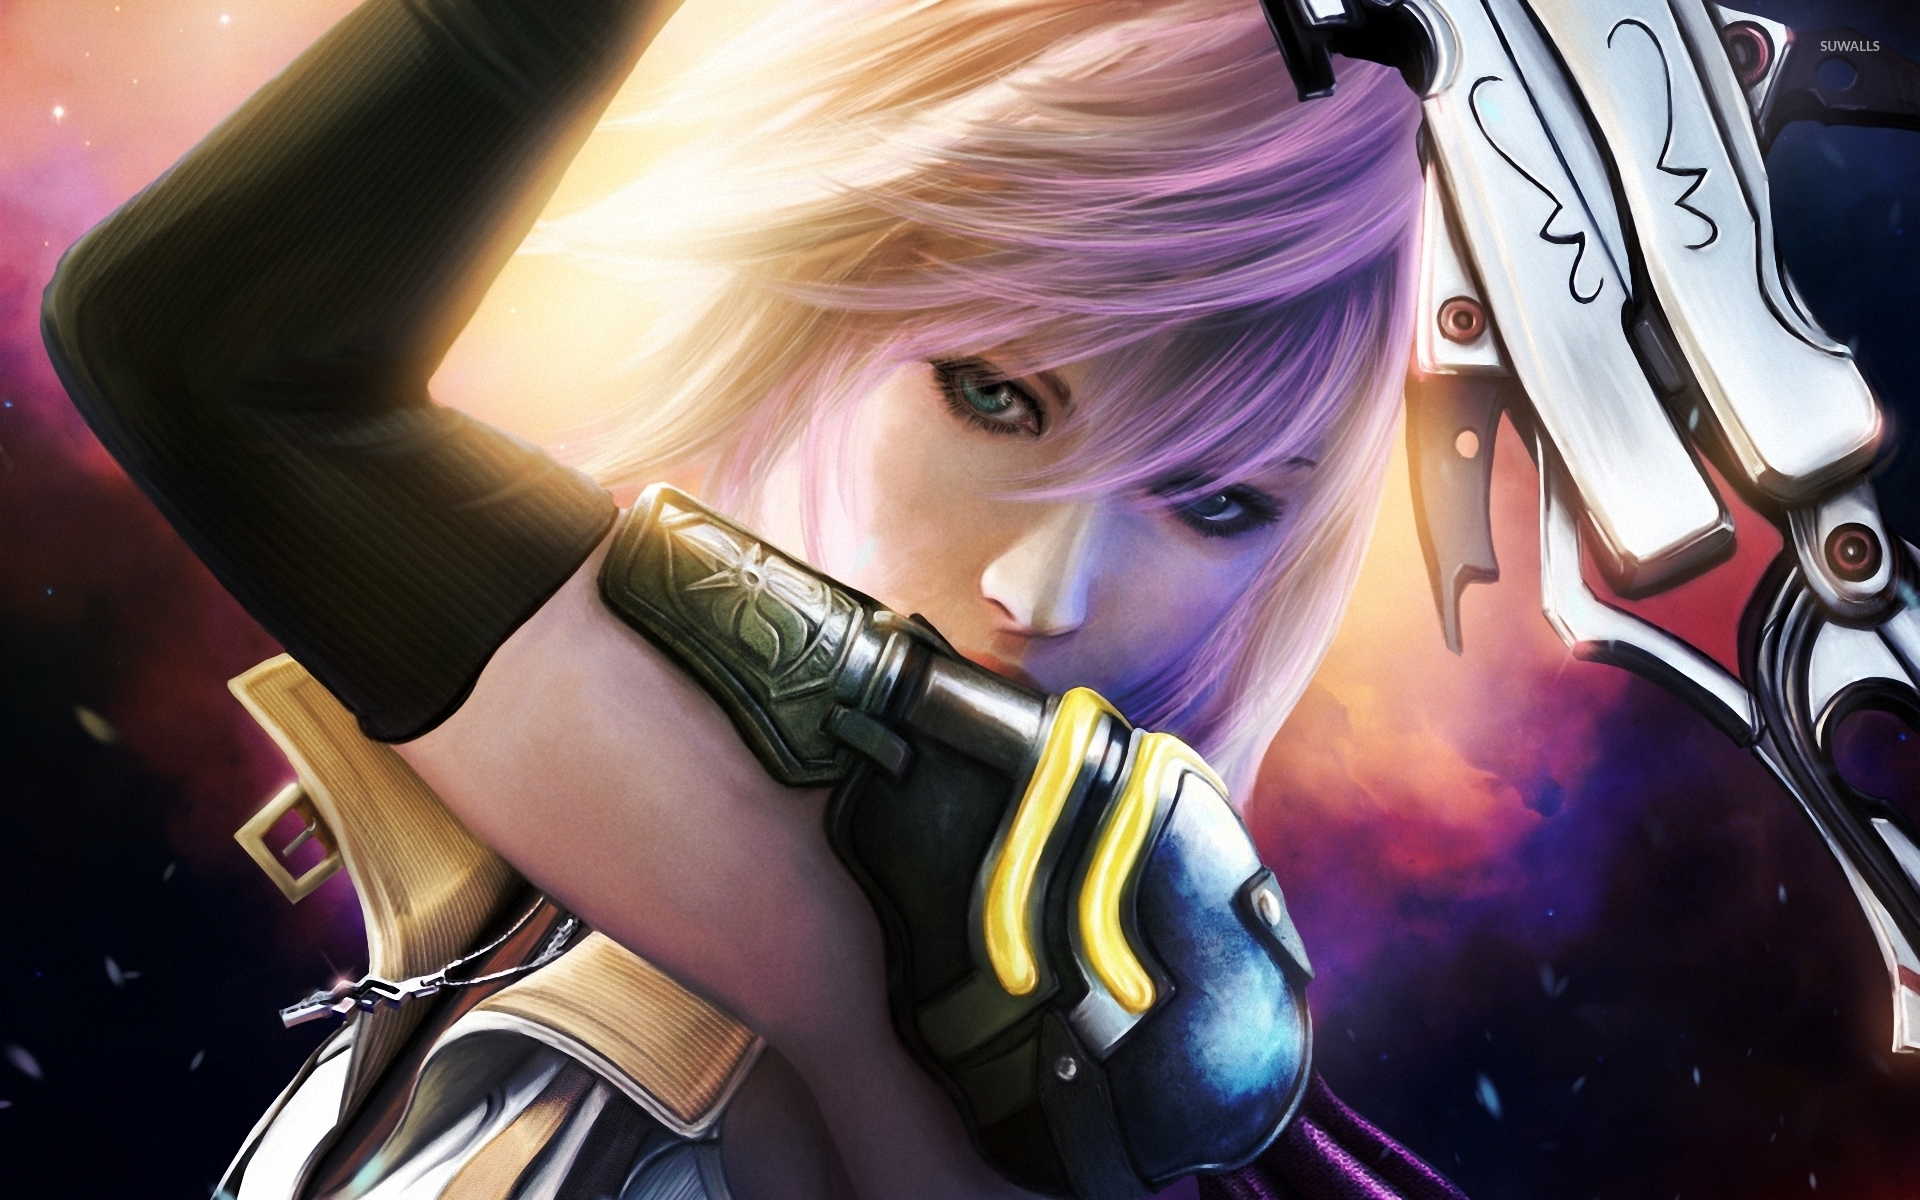 lightning - final fantasy xiii-2 [3] wallpaper - game wallpapers